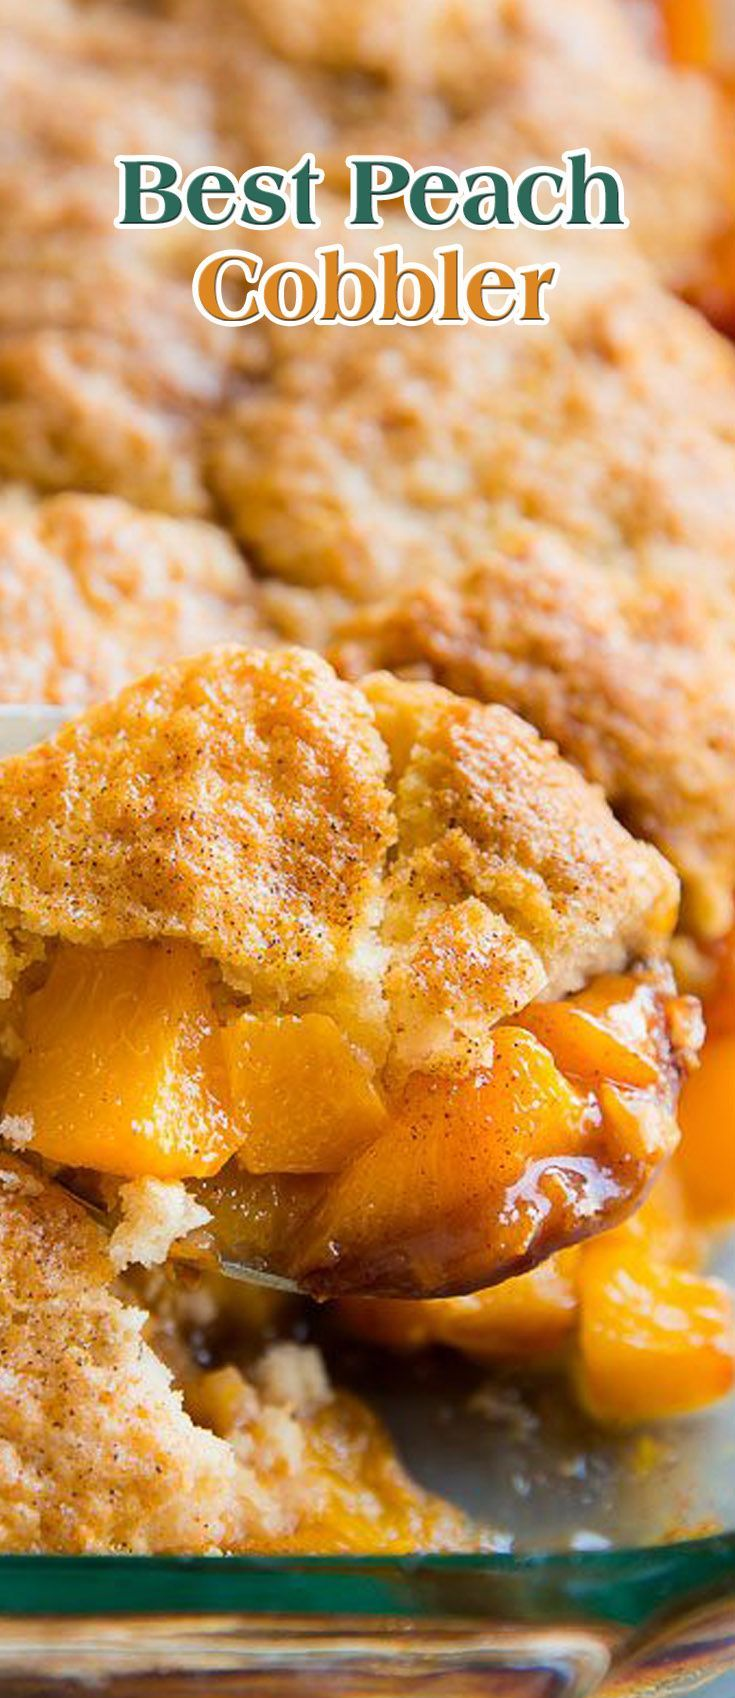 Best Peach Cobbler. #CompleteRecipes.com #recipe #recipes #food #foodgasm #cleaneating #healthyfood #healthy #healthyrecipes